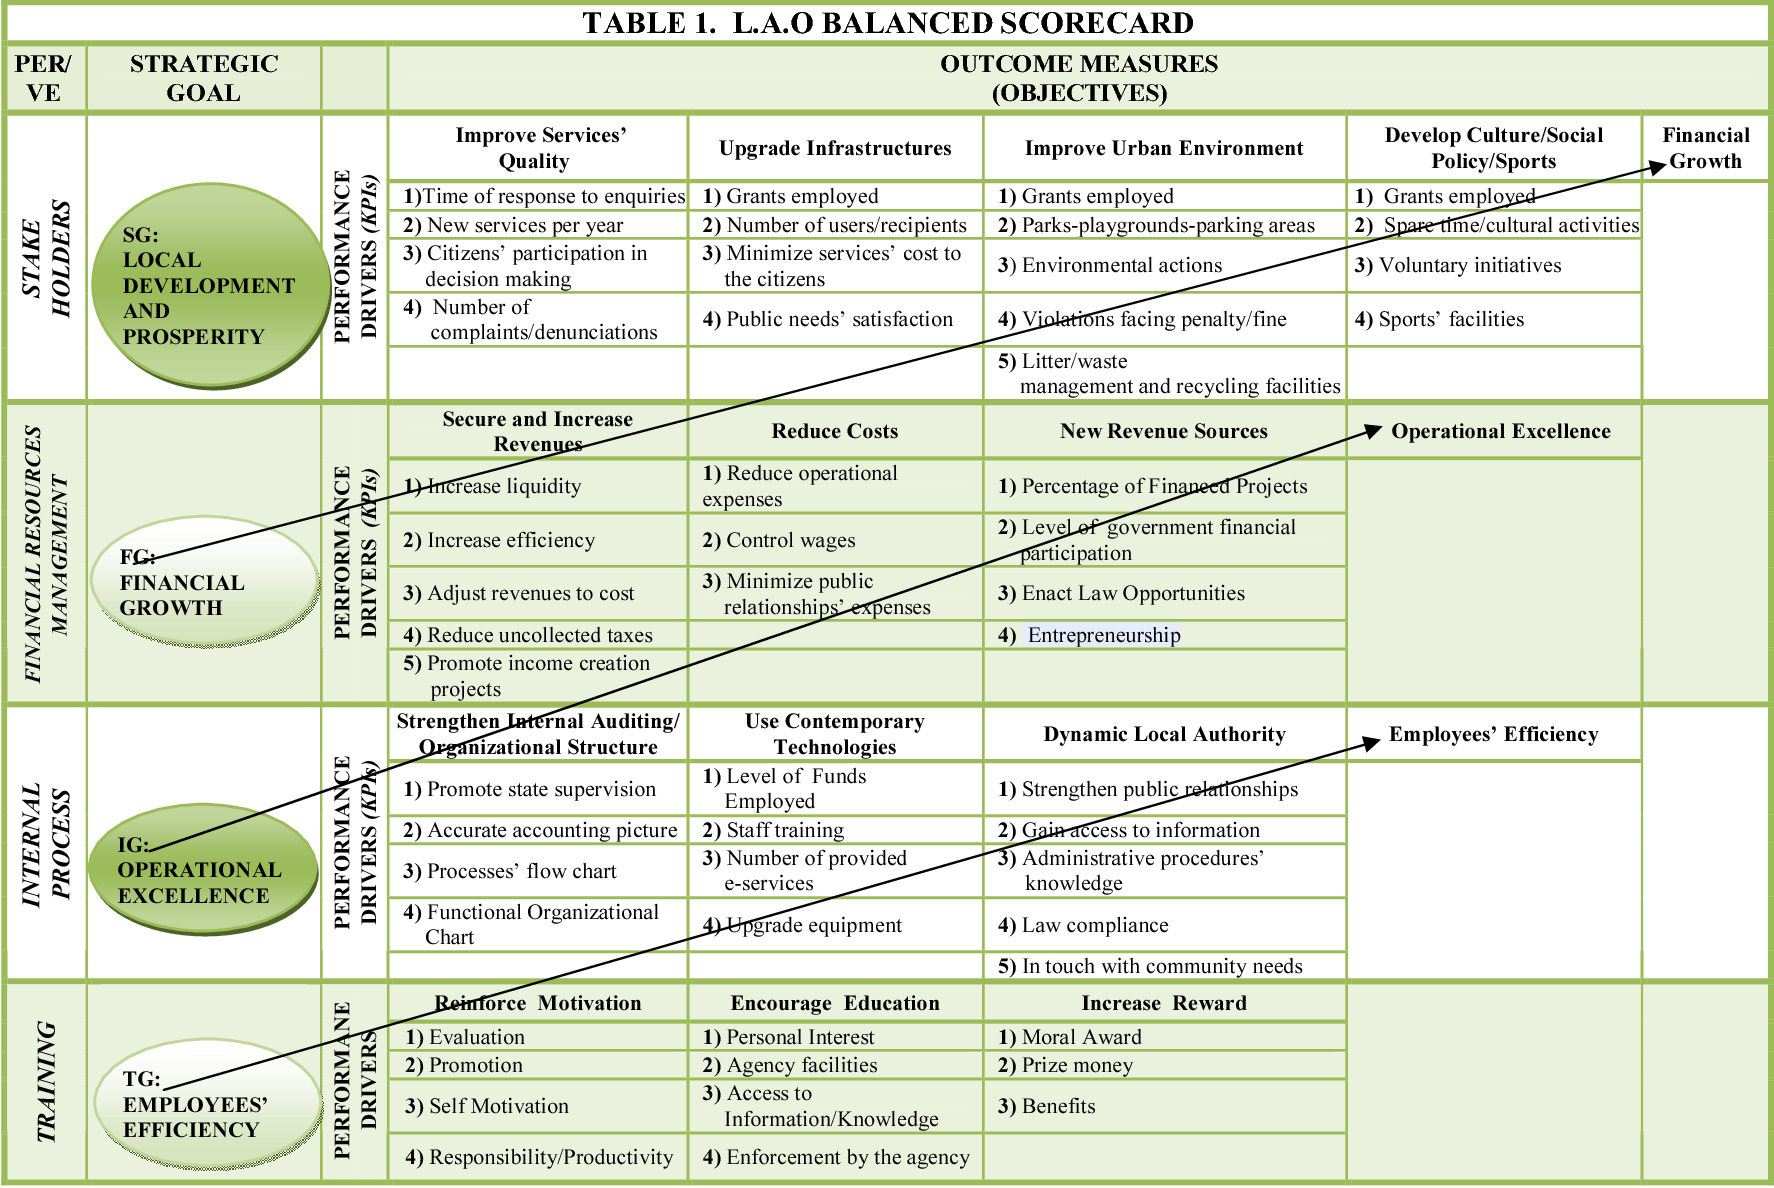 Table 1 from Designing a Balanced Scorecard for the